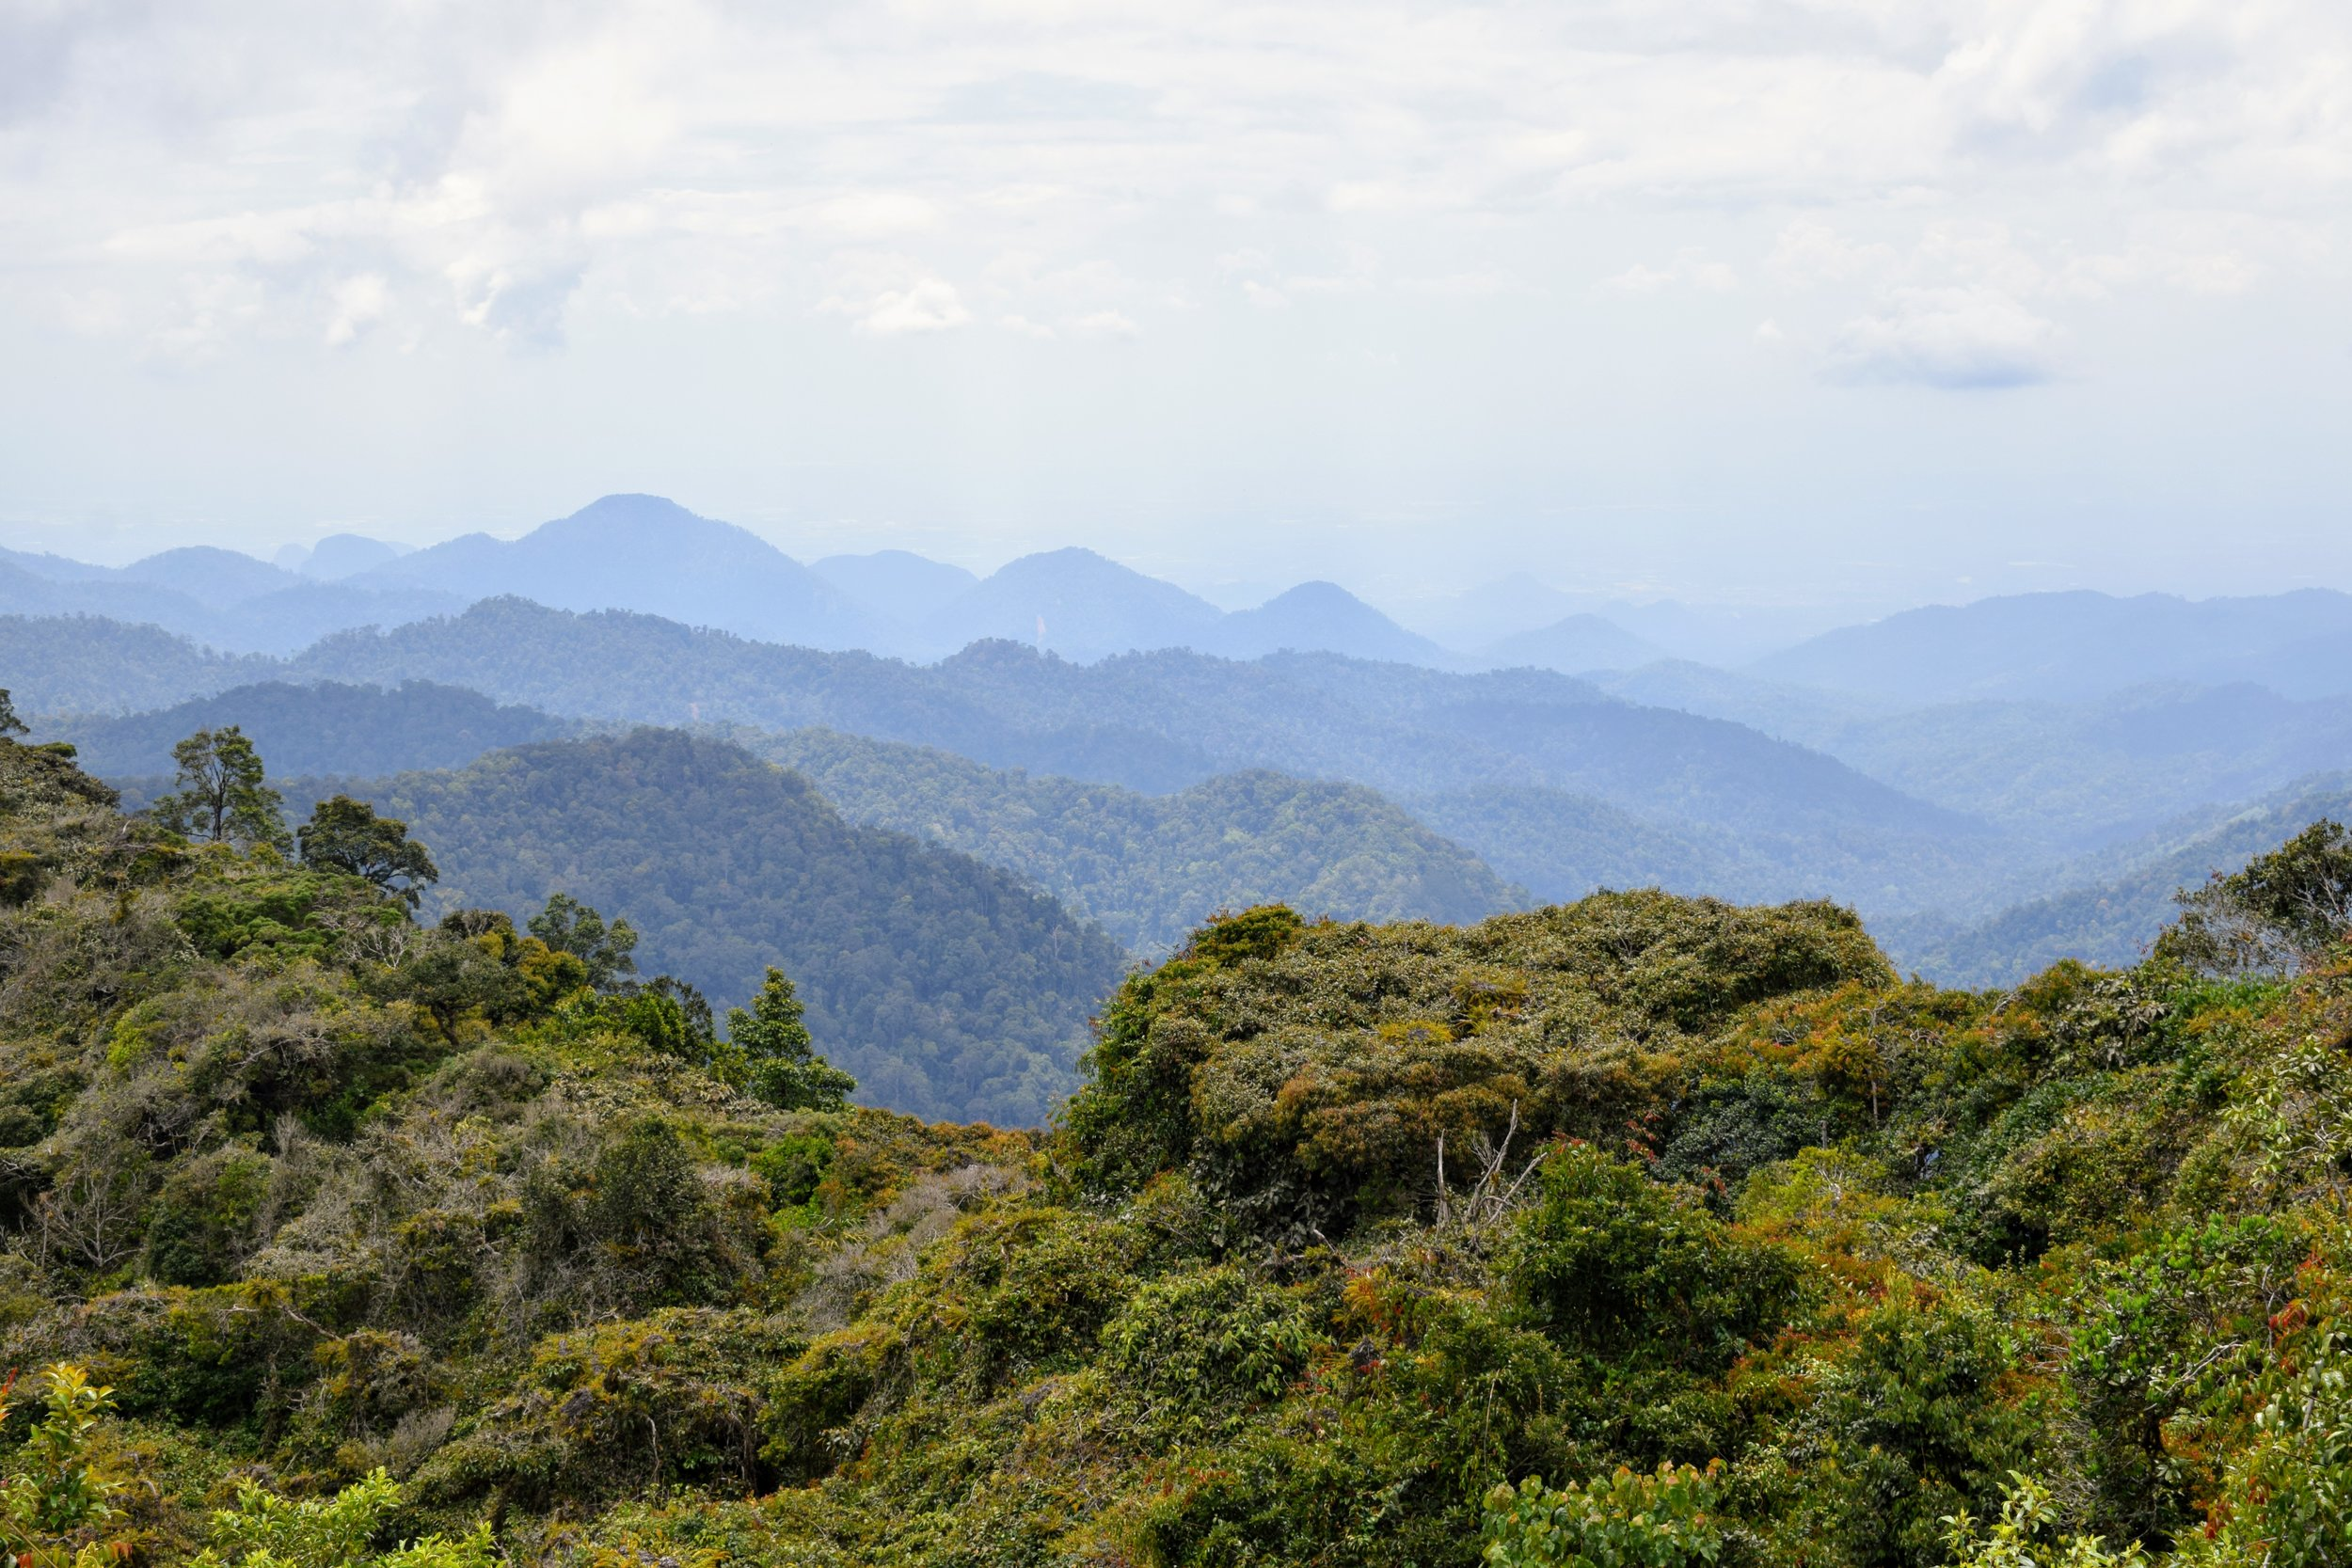 The view from the top of Gunung Jasar on Jungle Trail Number 10 from Tanah Rata.